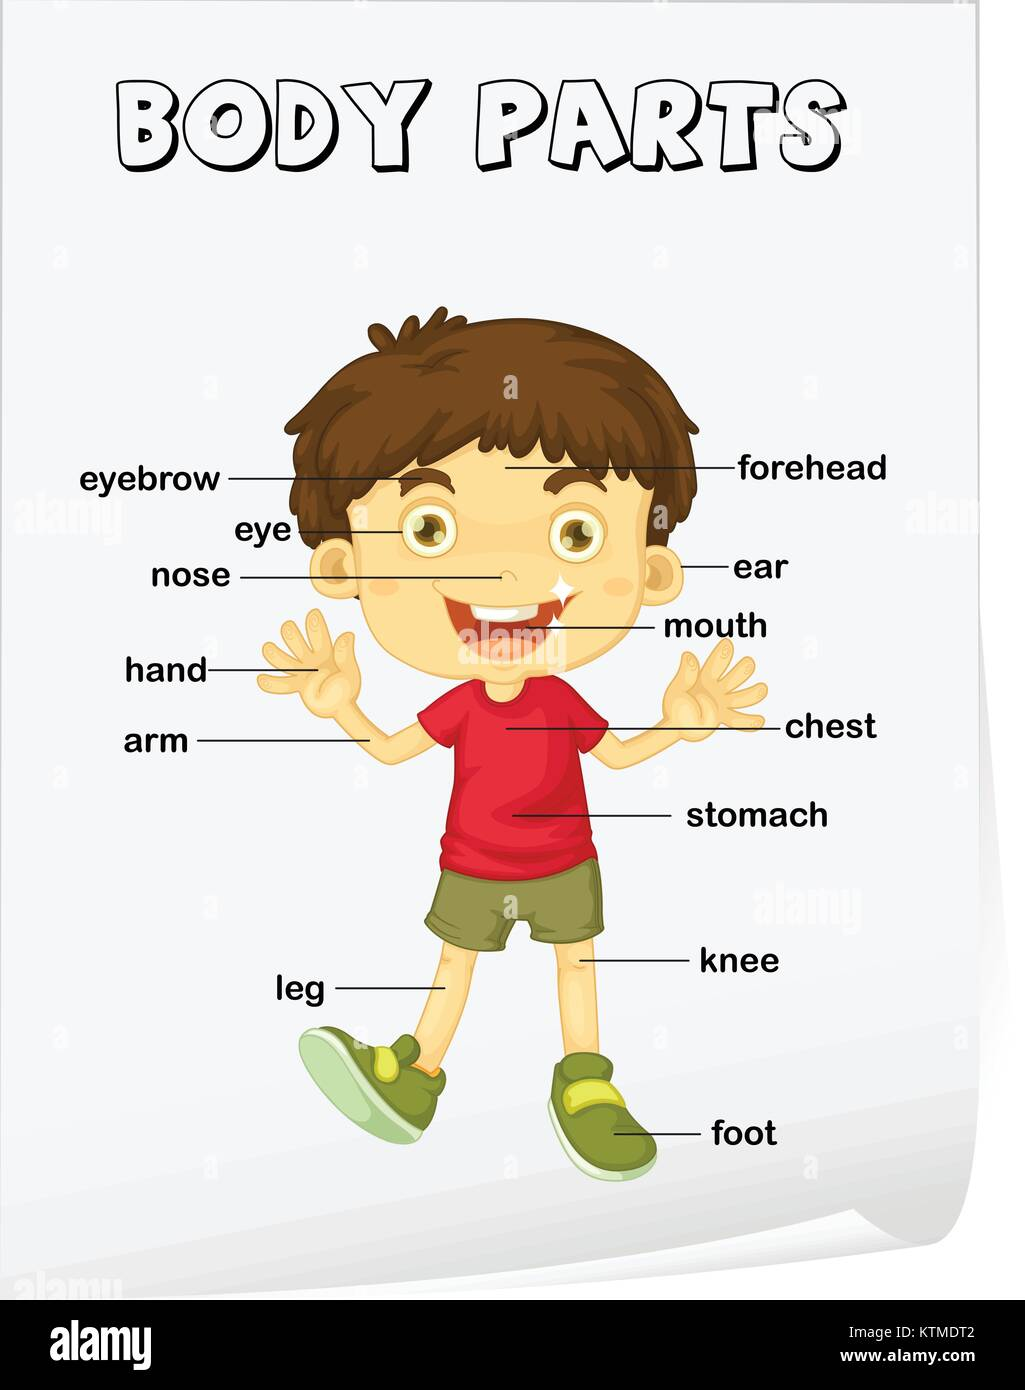 hight resolution of Vocabulary worksheet - parts of the body Stock Vector Image \u0026 Art - Alamy